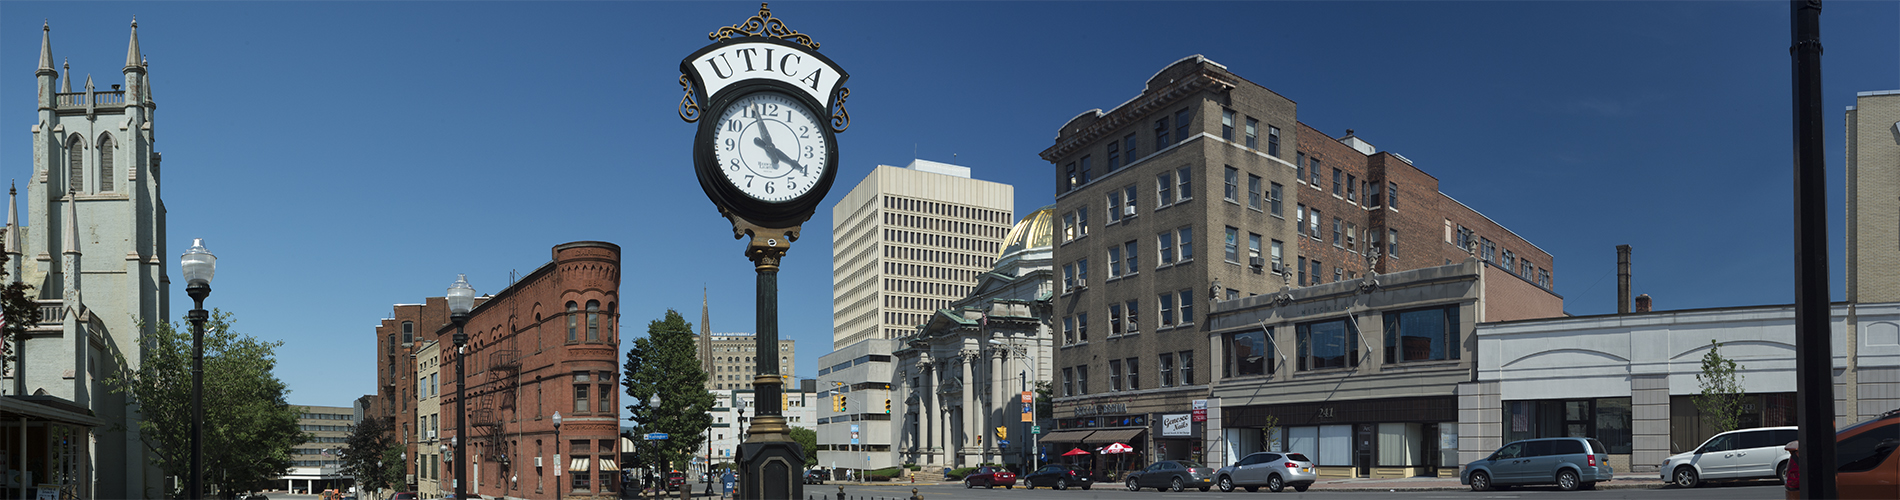 Utica_Downtown-Pano_071615_039-Pano